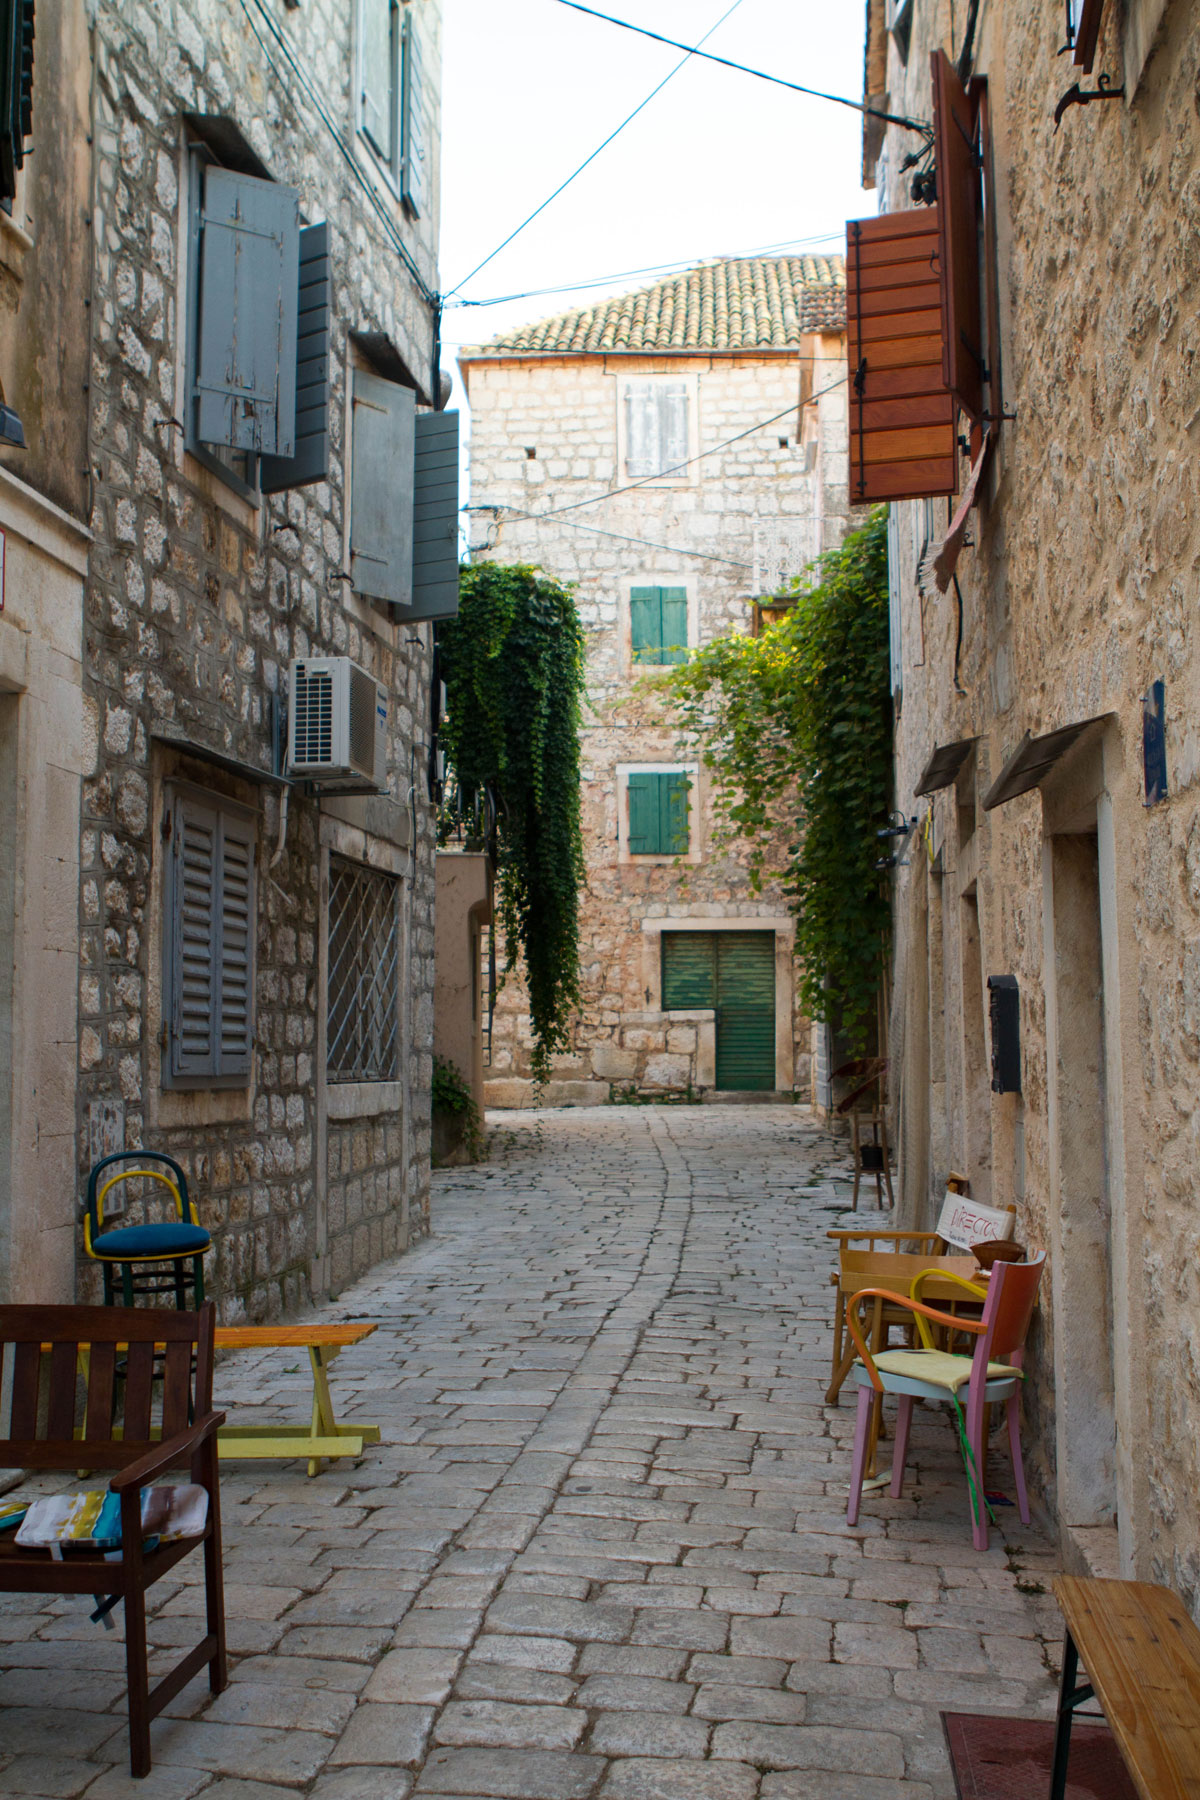 Streets-of-Stari-Grad_Hvar-(photo-by-Ste